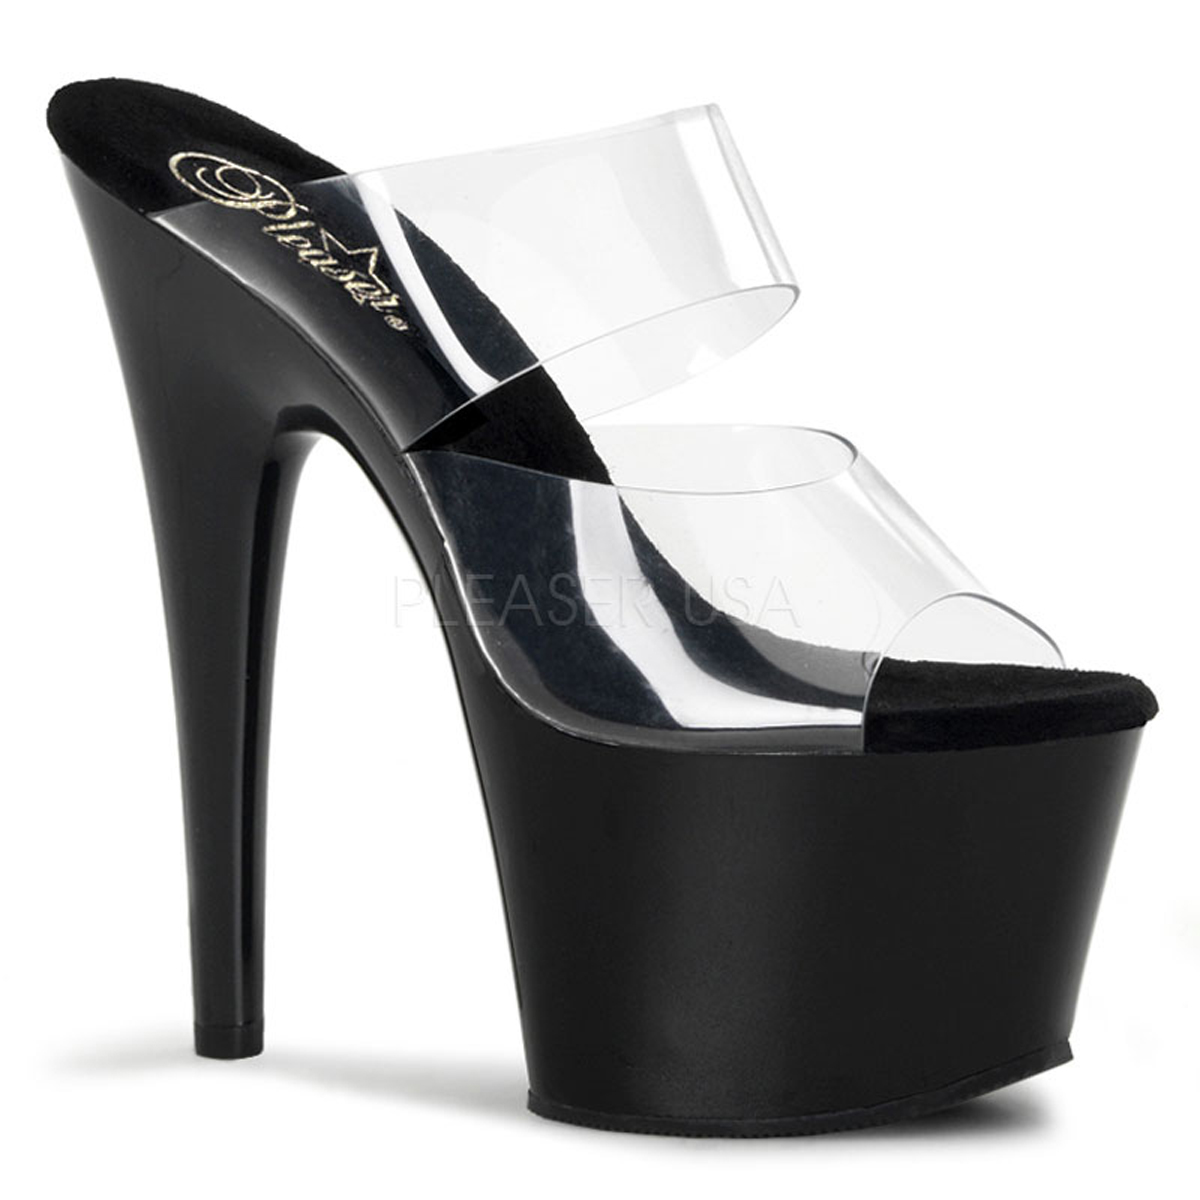 Pleaser ADORE-702, 7 Inch Stiletto Heel Two Band Slide Sa...